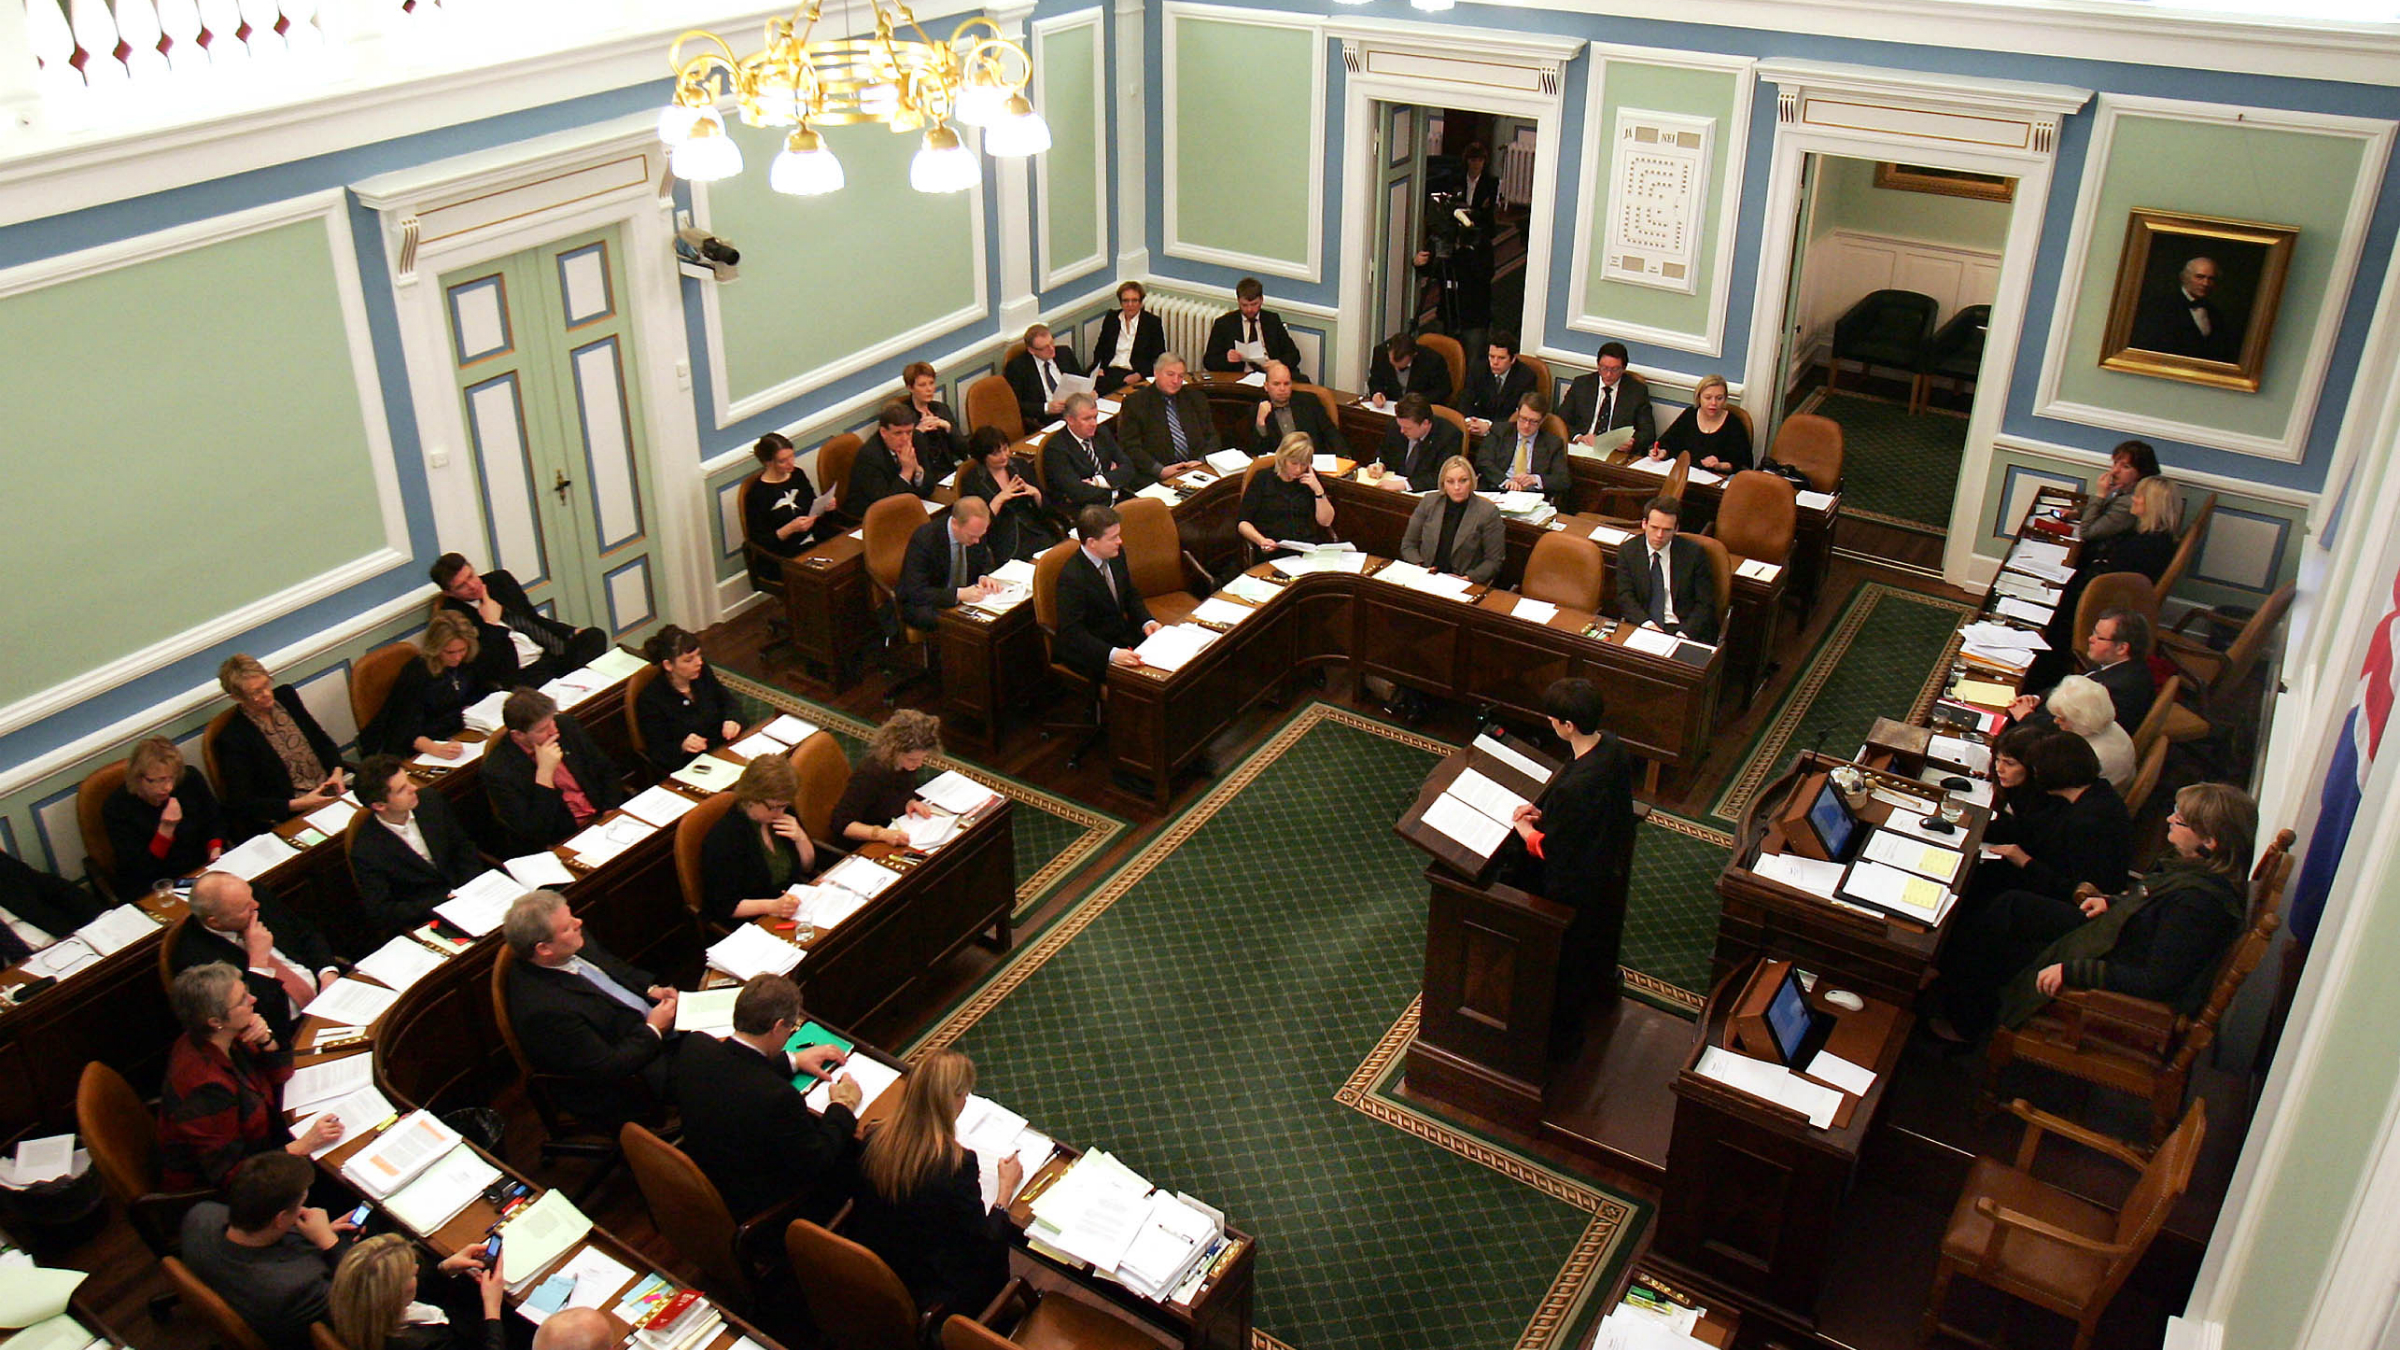 Iceland's parliament, debates a bill to hold a referendum over repayment of US$5.7 billion demanded by Britain and the Netherlands for depositors' money lost in failed Icelandic banks in Reykjavik Friday Jan. 8, 2010 . The government was forced into organizing the nationwide vote after Iceland's President Olafur R. Grimsson refused to sign legislation on the repayment into law. (AP Photo/Brynjar Gauti